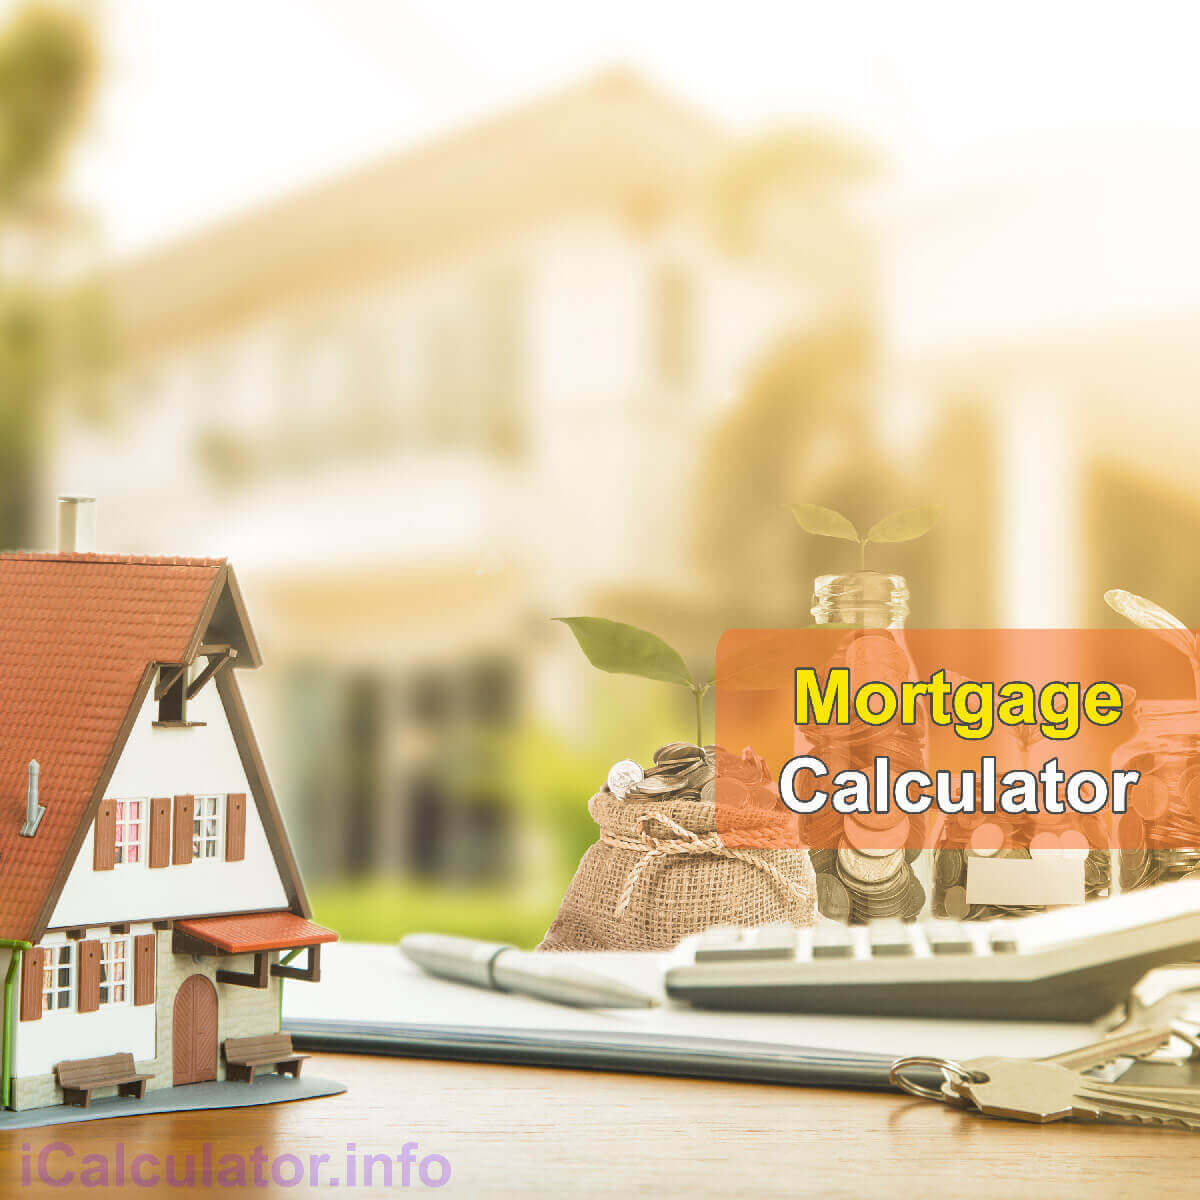 Mortgage Calculators. This image shows a new homebuyers considering the costs of a new mortgage and monthly mortgage repayment using the mortgage calculators provided by iCalculator.